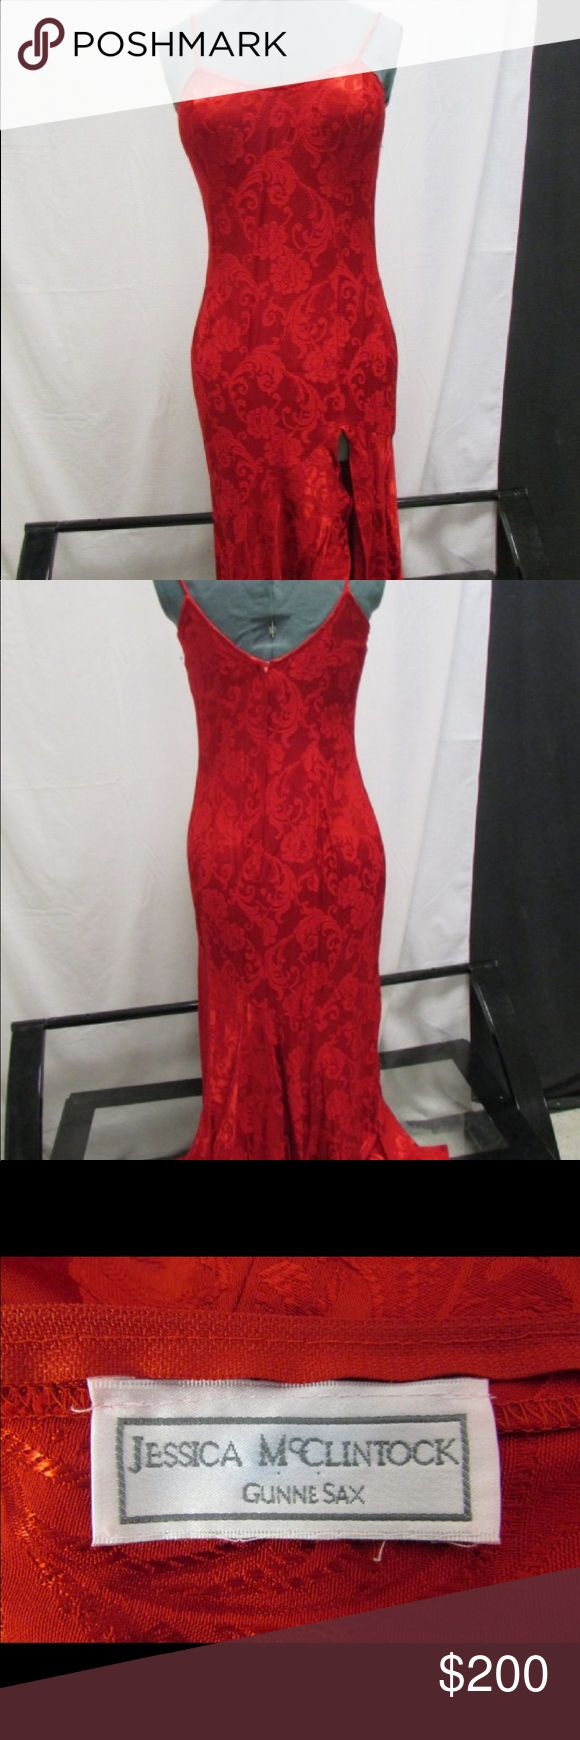 "Authentic Jessica McClintock Gorgeous blood red authentic satin floral print Jessica McClintock maxi gown with high slit. Excellent condition. Measurements:  Shoulders: 10 3/4""  Bust: 17""  Waist: 17""  Total Dress Length: 60"" Jessica McClintock Dresses Maxi"